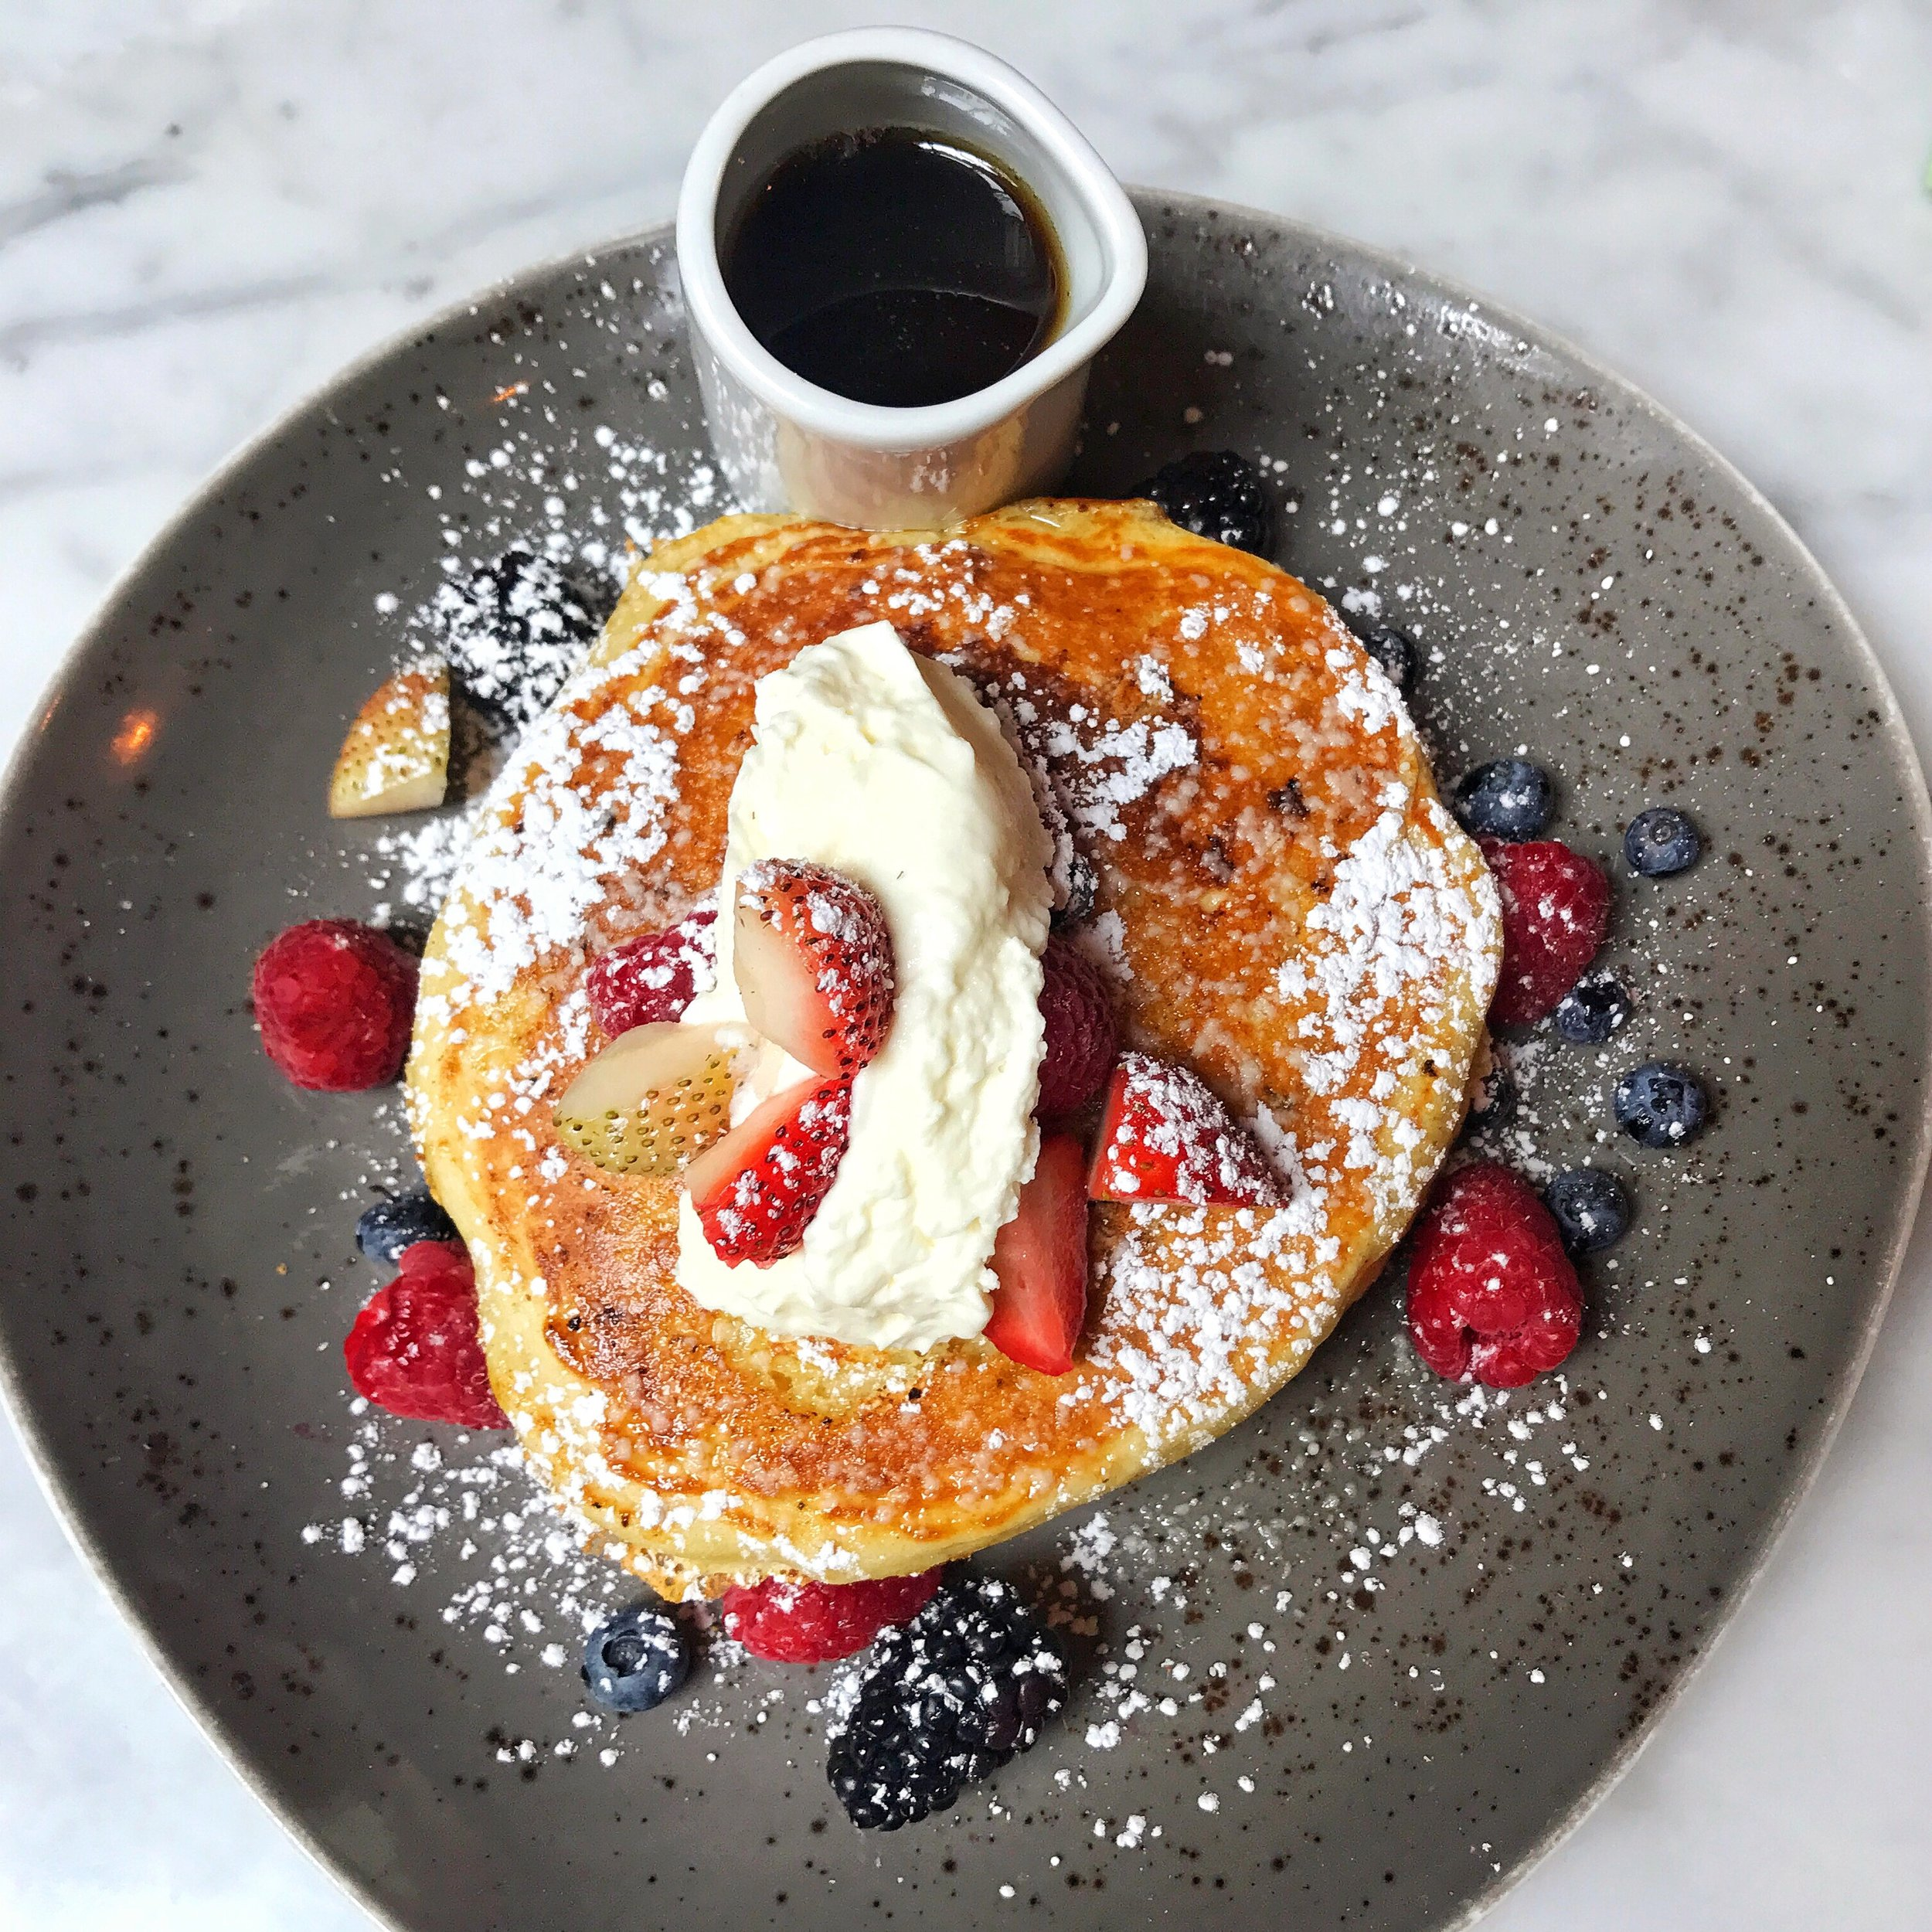 Olive oil Pancakes, mixed berries, chantilly creme, vanilla brown butter and maple syrup